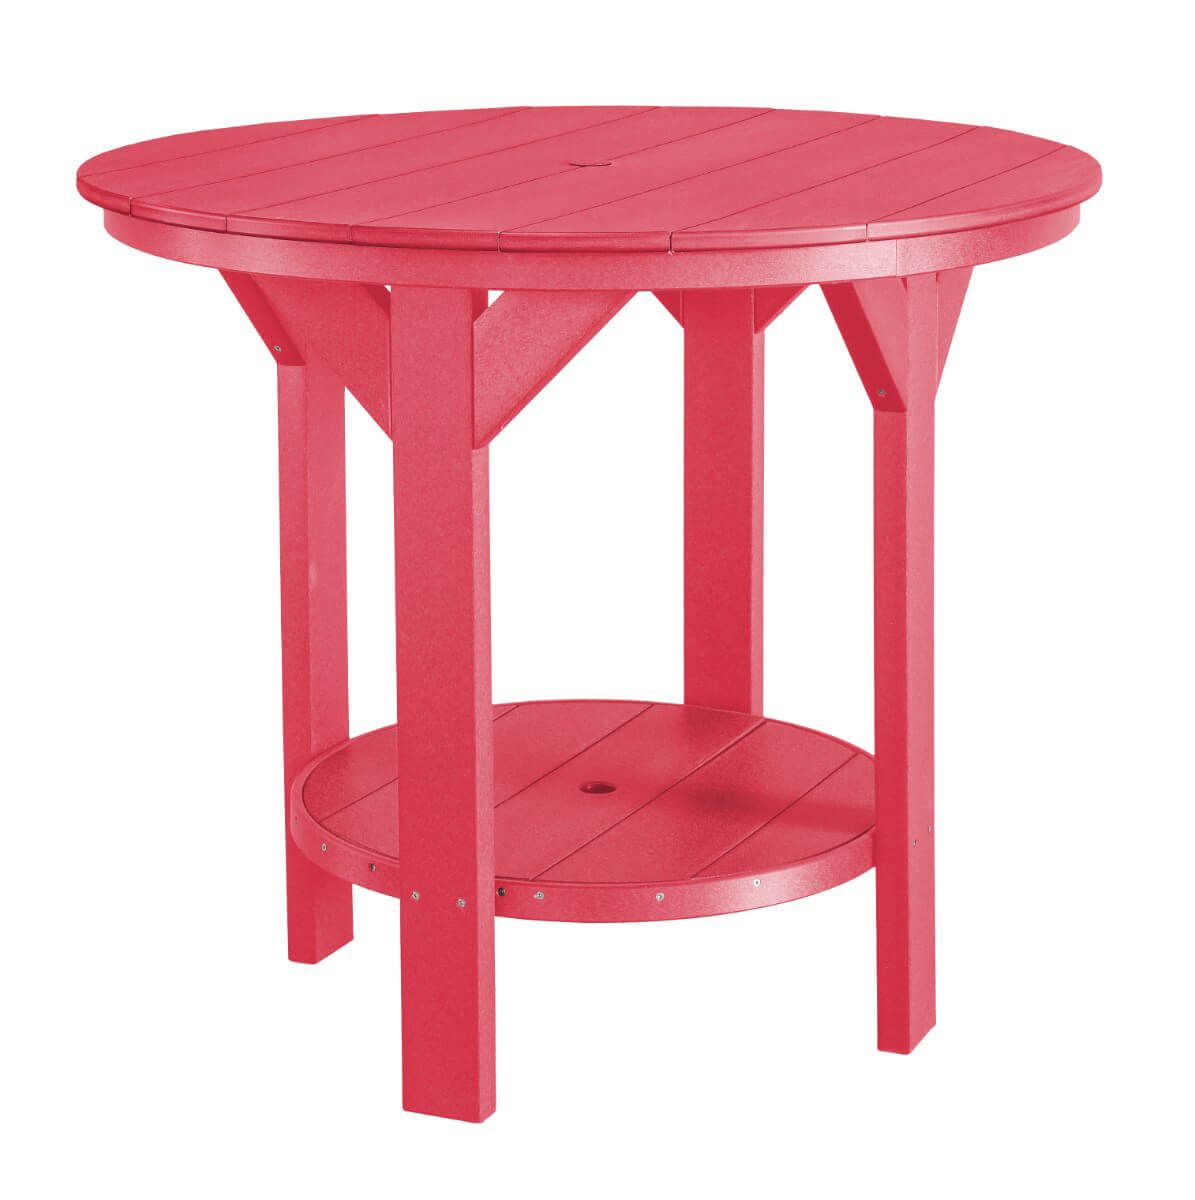 Pink Sidra Outdoor Pub Table